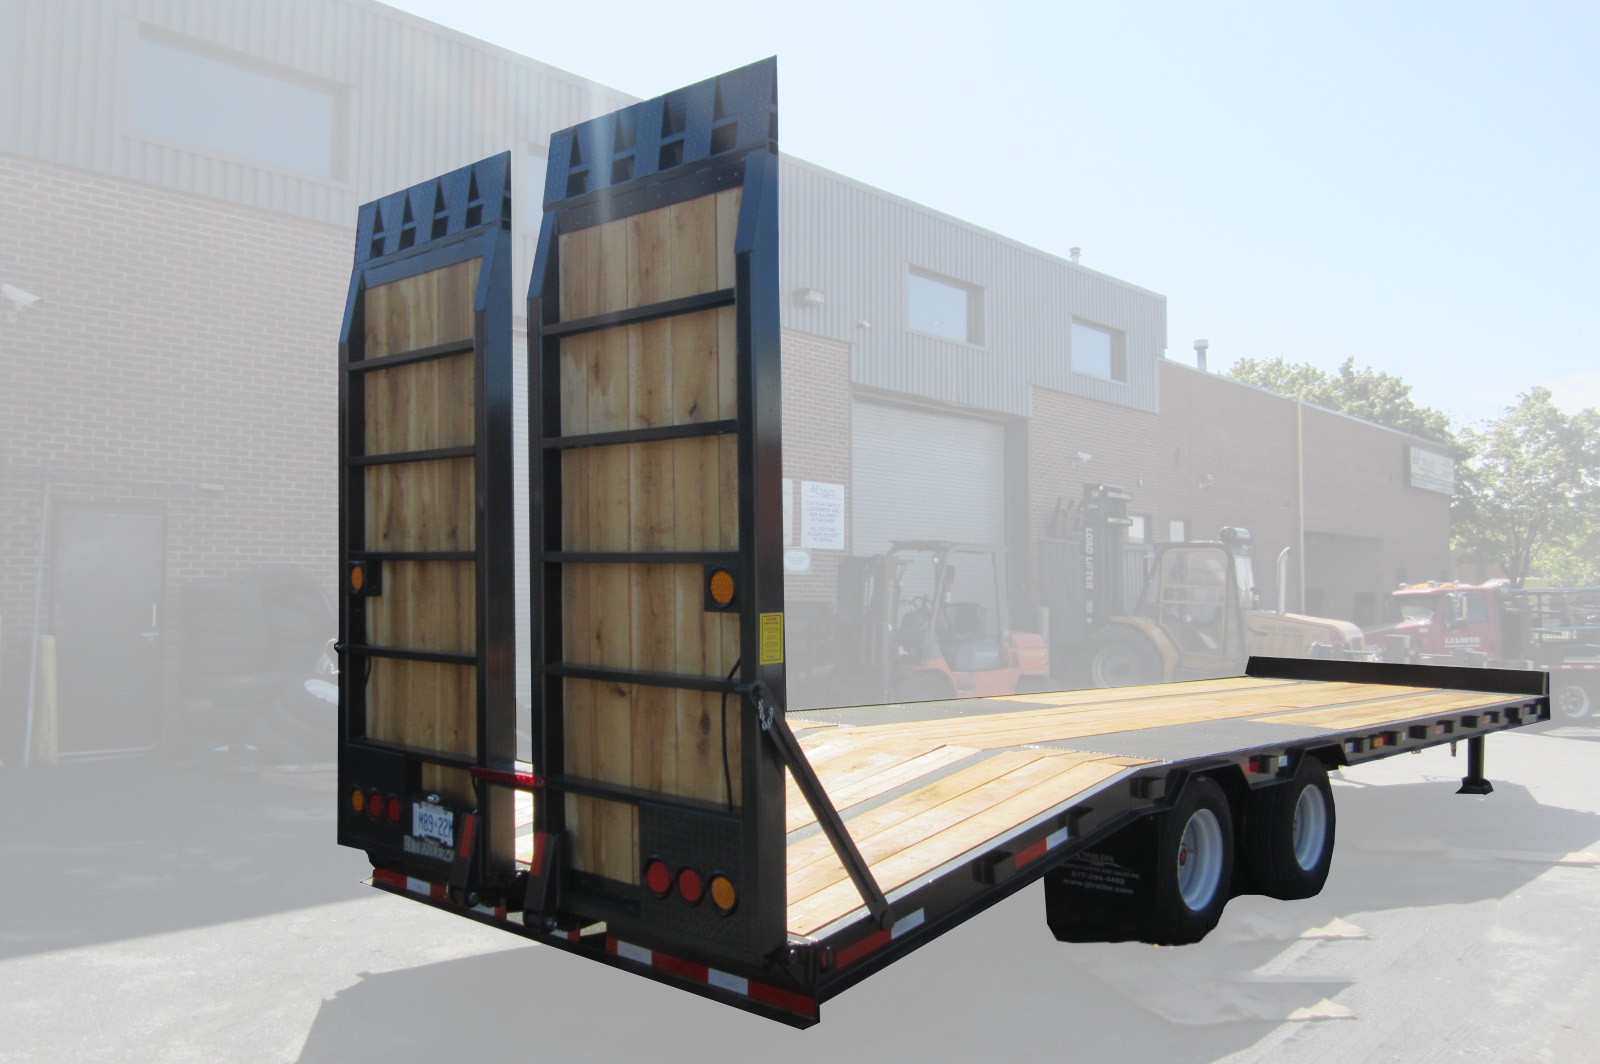 WebImages%5COldTrailerCatalog%5CHeavy_Equipment_Low_Bed_Trailers__Air__Electric_Brake%5CTandem_Axle_TagALong_AT2%5C207IMG1007 haldex abs wiring diagram utility trailer gandul 45 77 79 119 Phillips SAE J560 at bayanpartner.co